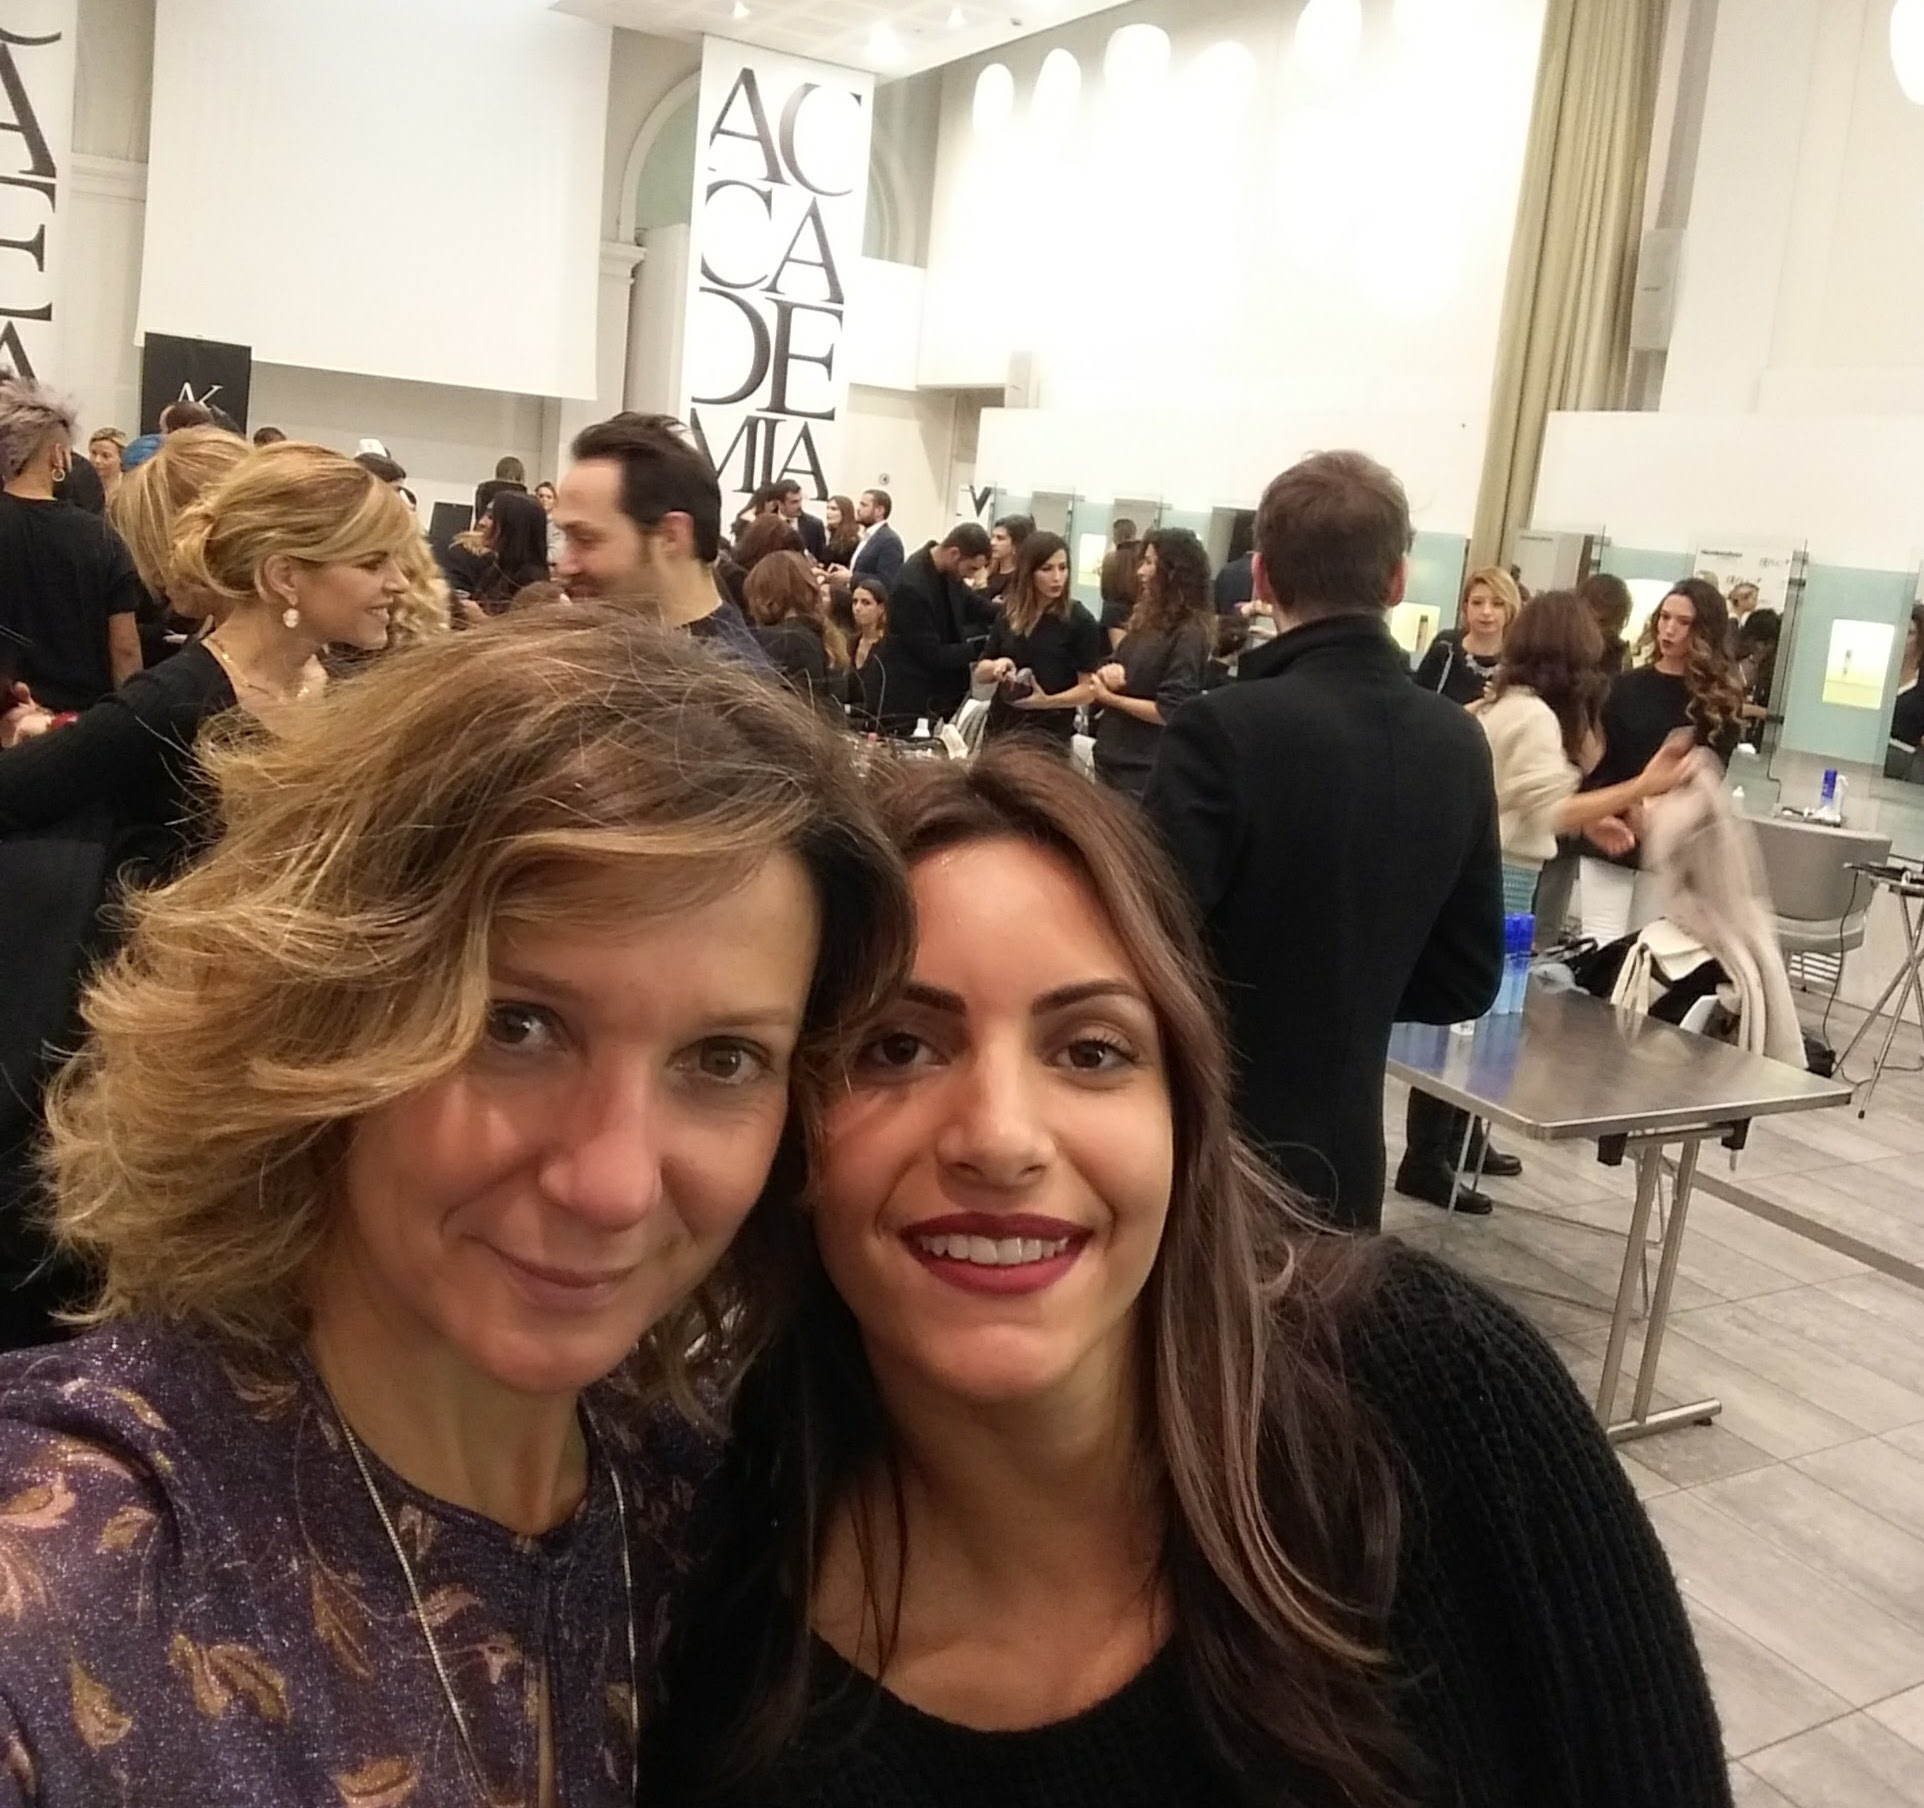 Christmas-Party-Accademia-grazie-Laura-Moreschini